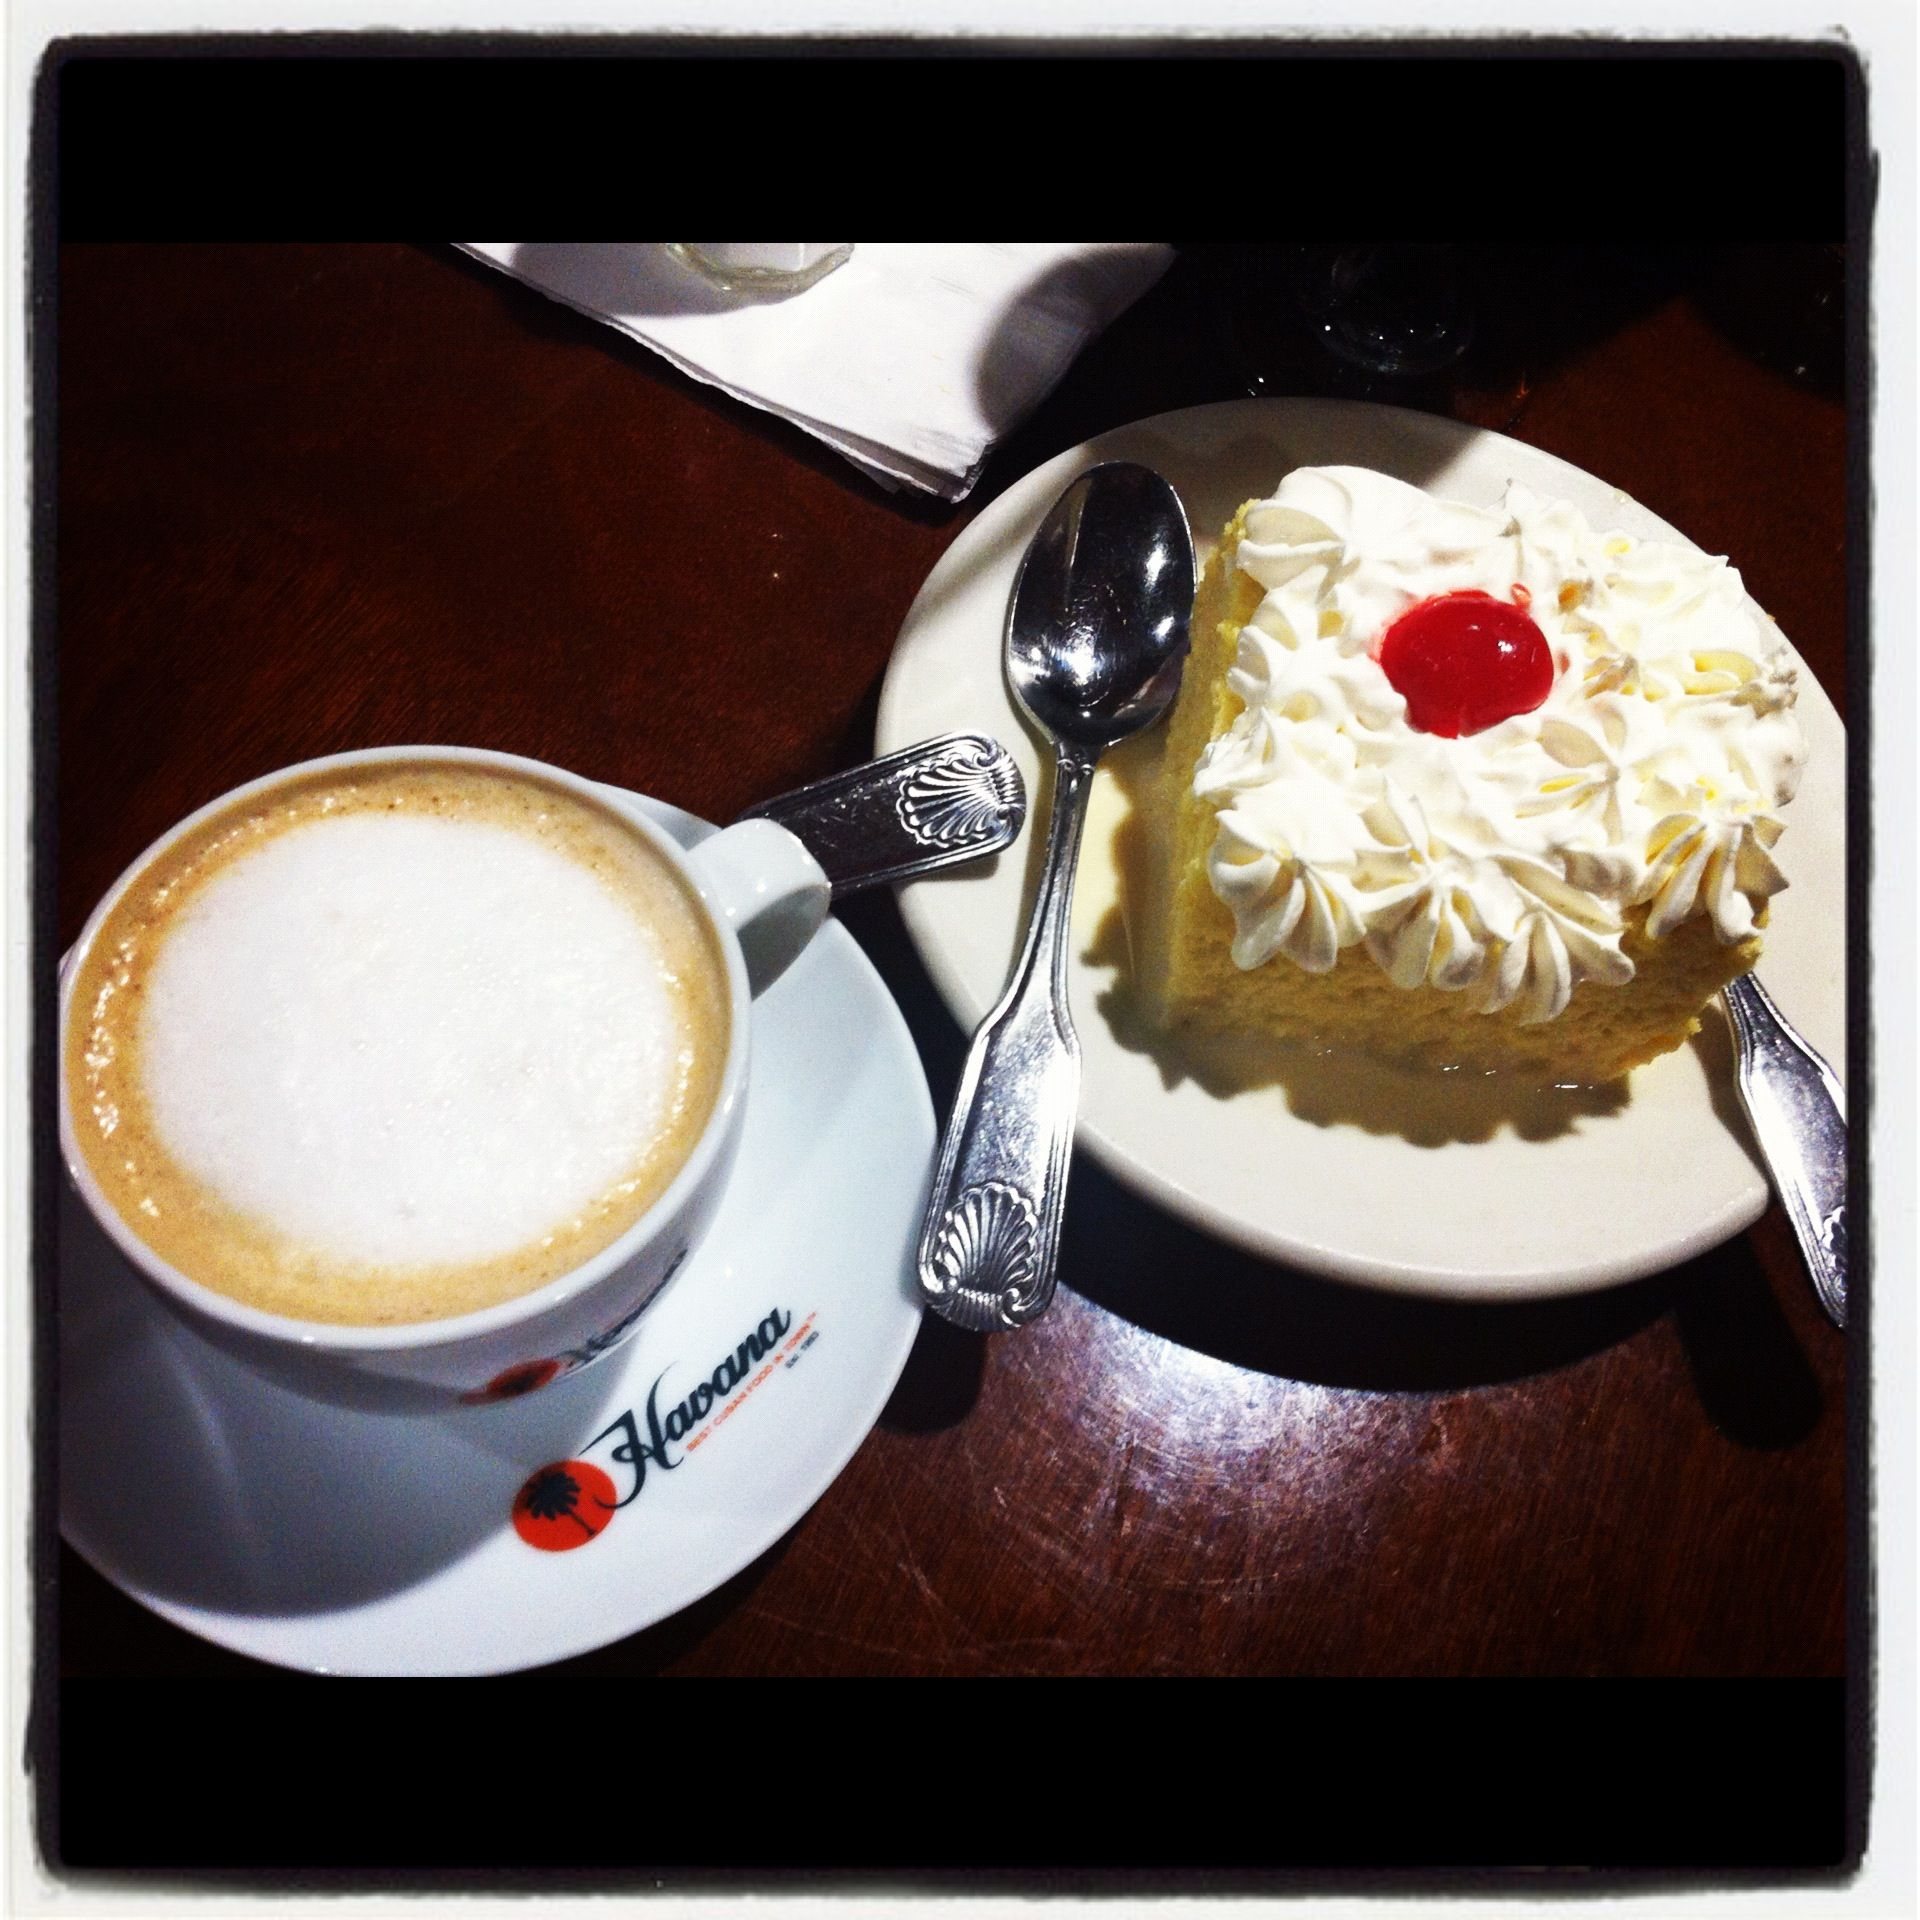 Cuban food: dessert for two. Just the right size, tres leches along ...